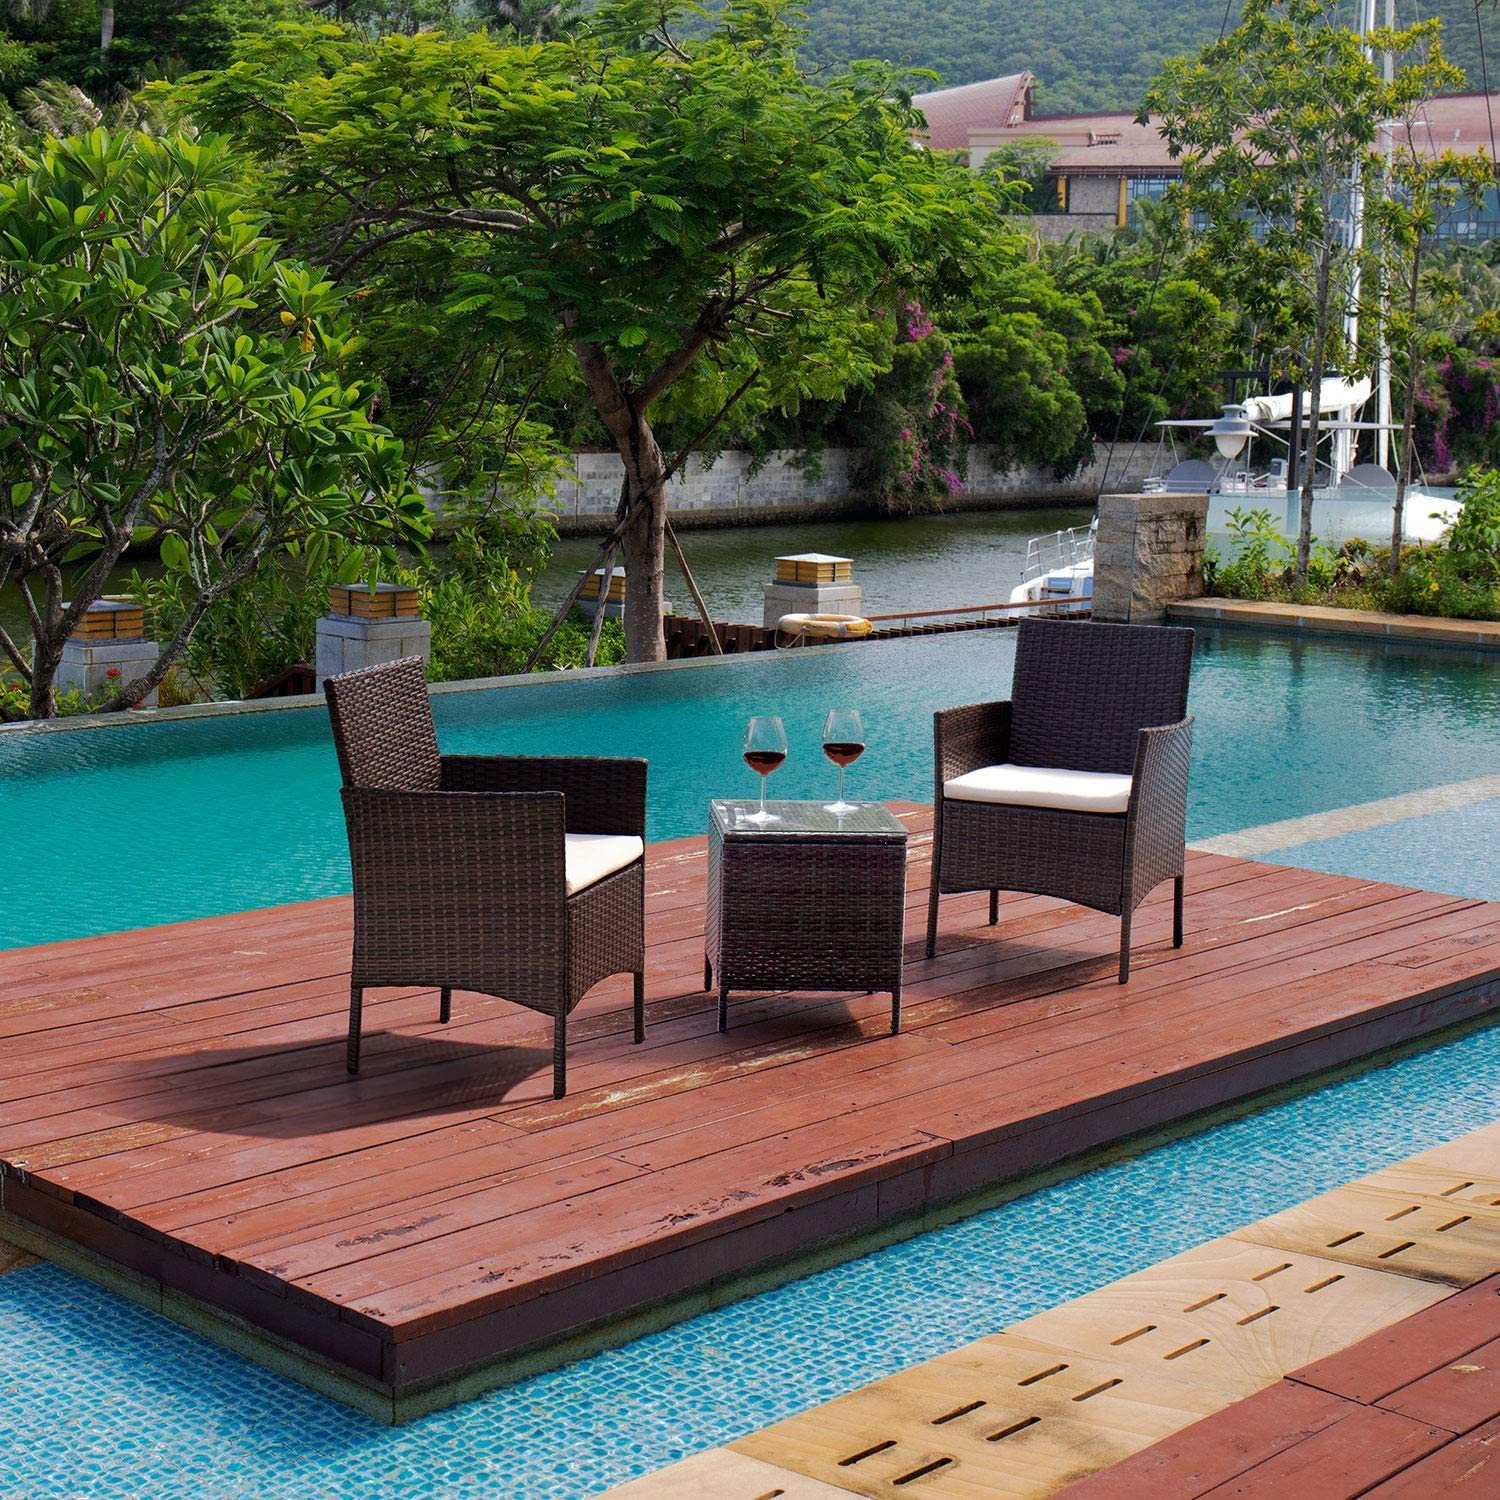 Devoko Patio Porch Furniture Sets 3 Pieces PE Rattan Wicker Chairs with Table Outdoor Garden Furniture Sets (Brown/Beige): Garden & Outdoor